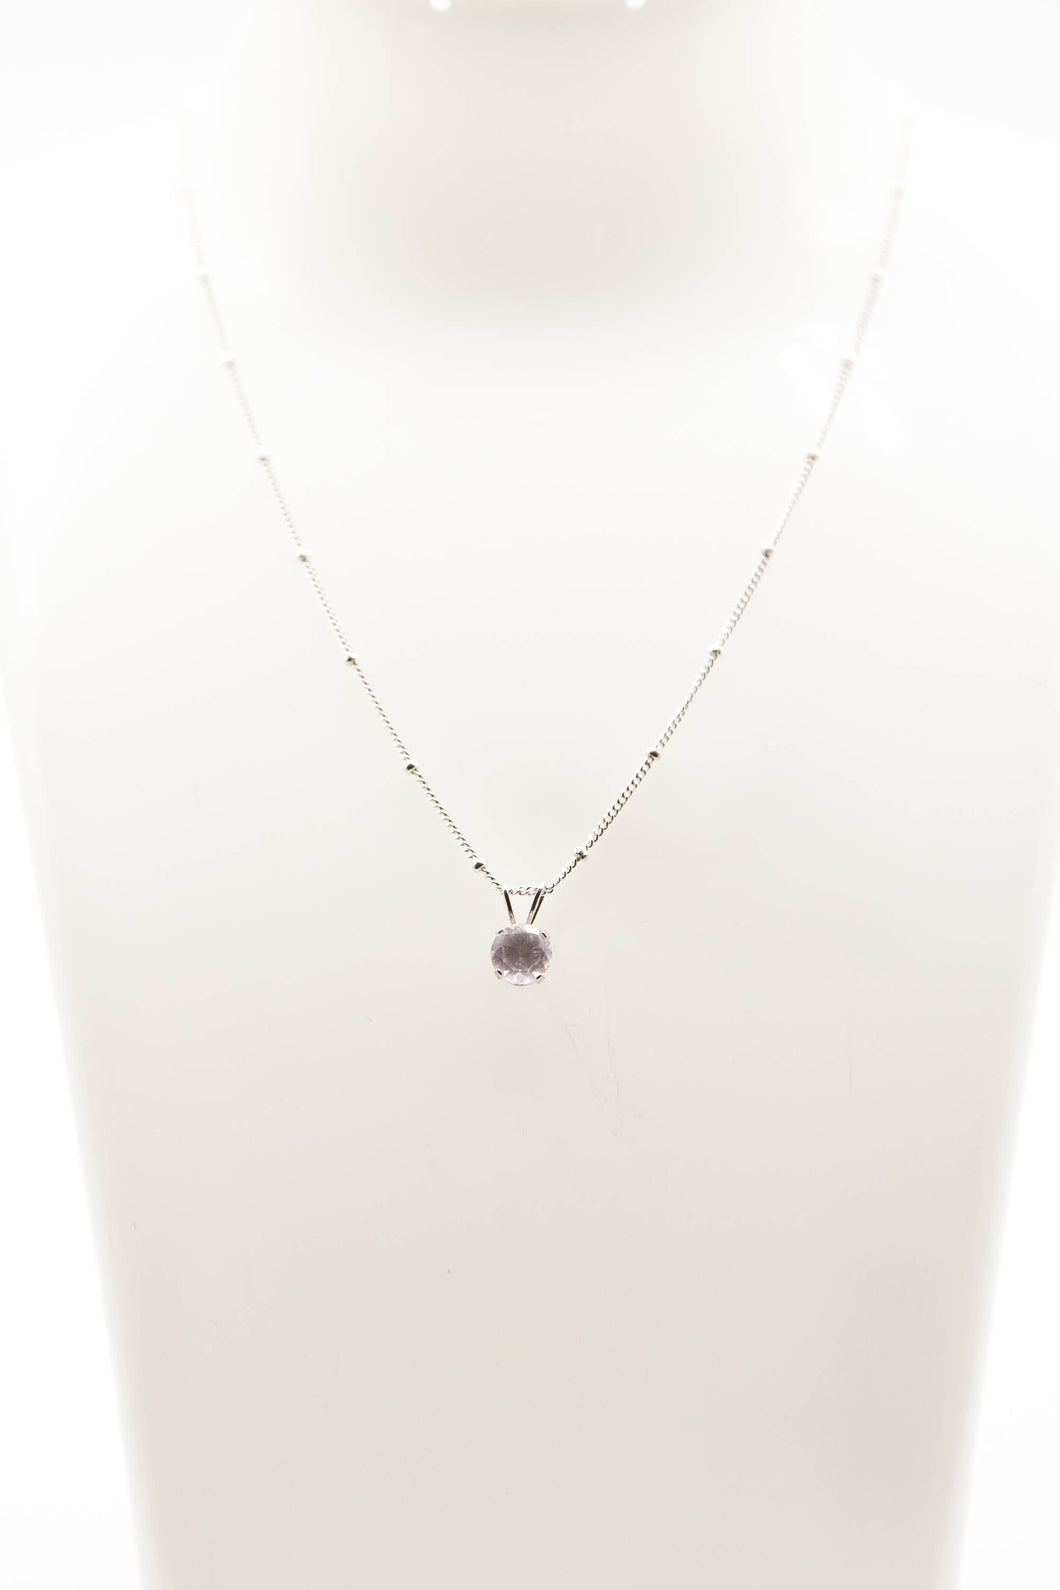 Nova Rose Quartz Necklace (Available in Silver or Gold)